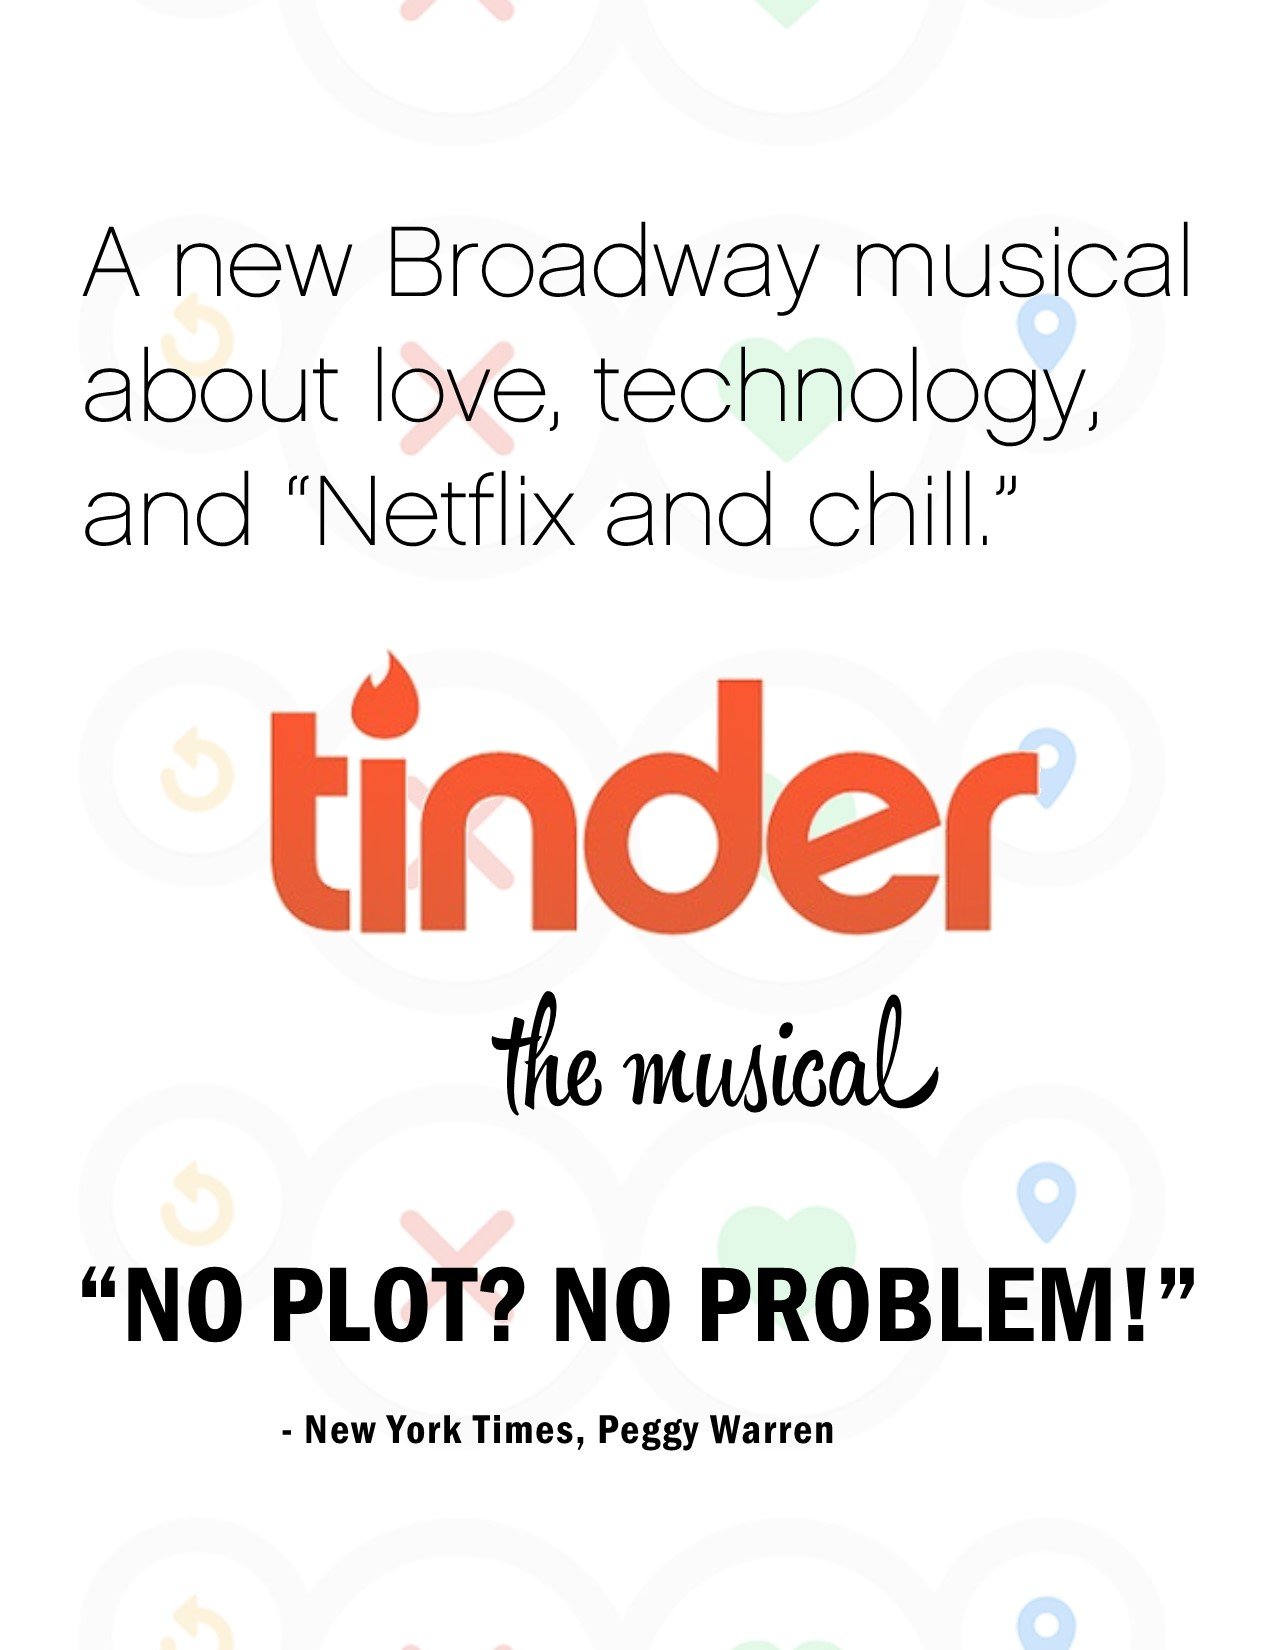 tinder the musical